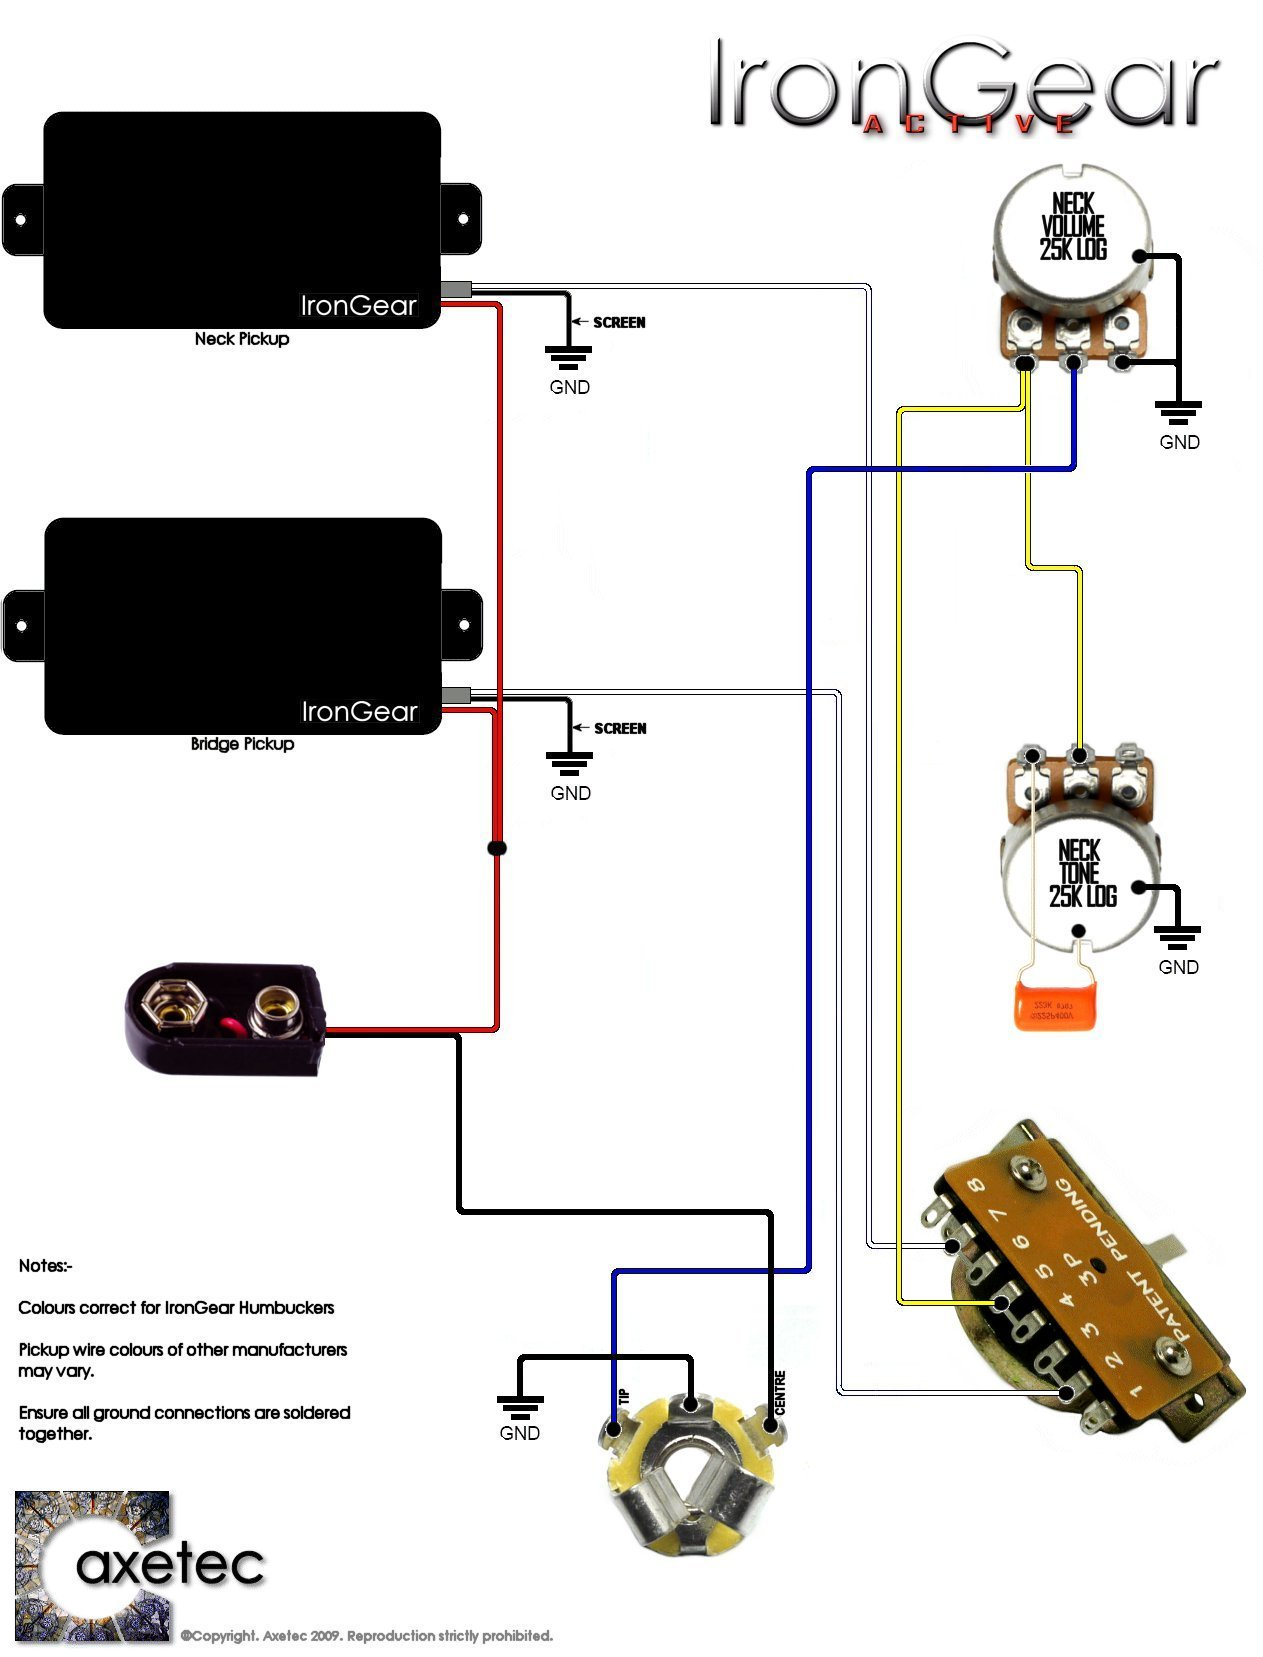 Active Pickup Wiring - Ver Wiring Diagram on 4 wire transformer, 4 wire cable, 4 wire generator, 4 wire coil, 4 wire plug, 4 wire alternator, 4 wire parts, 4 wire electrical wiring, 4 wire relay, 4 wire circuit, 4 wire switch diagram, 4 wire furnace diagram, 4 wire compressor, 4 wire headlight, 4-way circuit diagram, 4 wire arduino diagram, 4 wire solenoid, 4 wire fan diagram, 4 wire regulator, 4 wire trailer diagram,